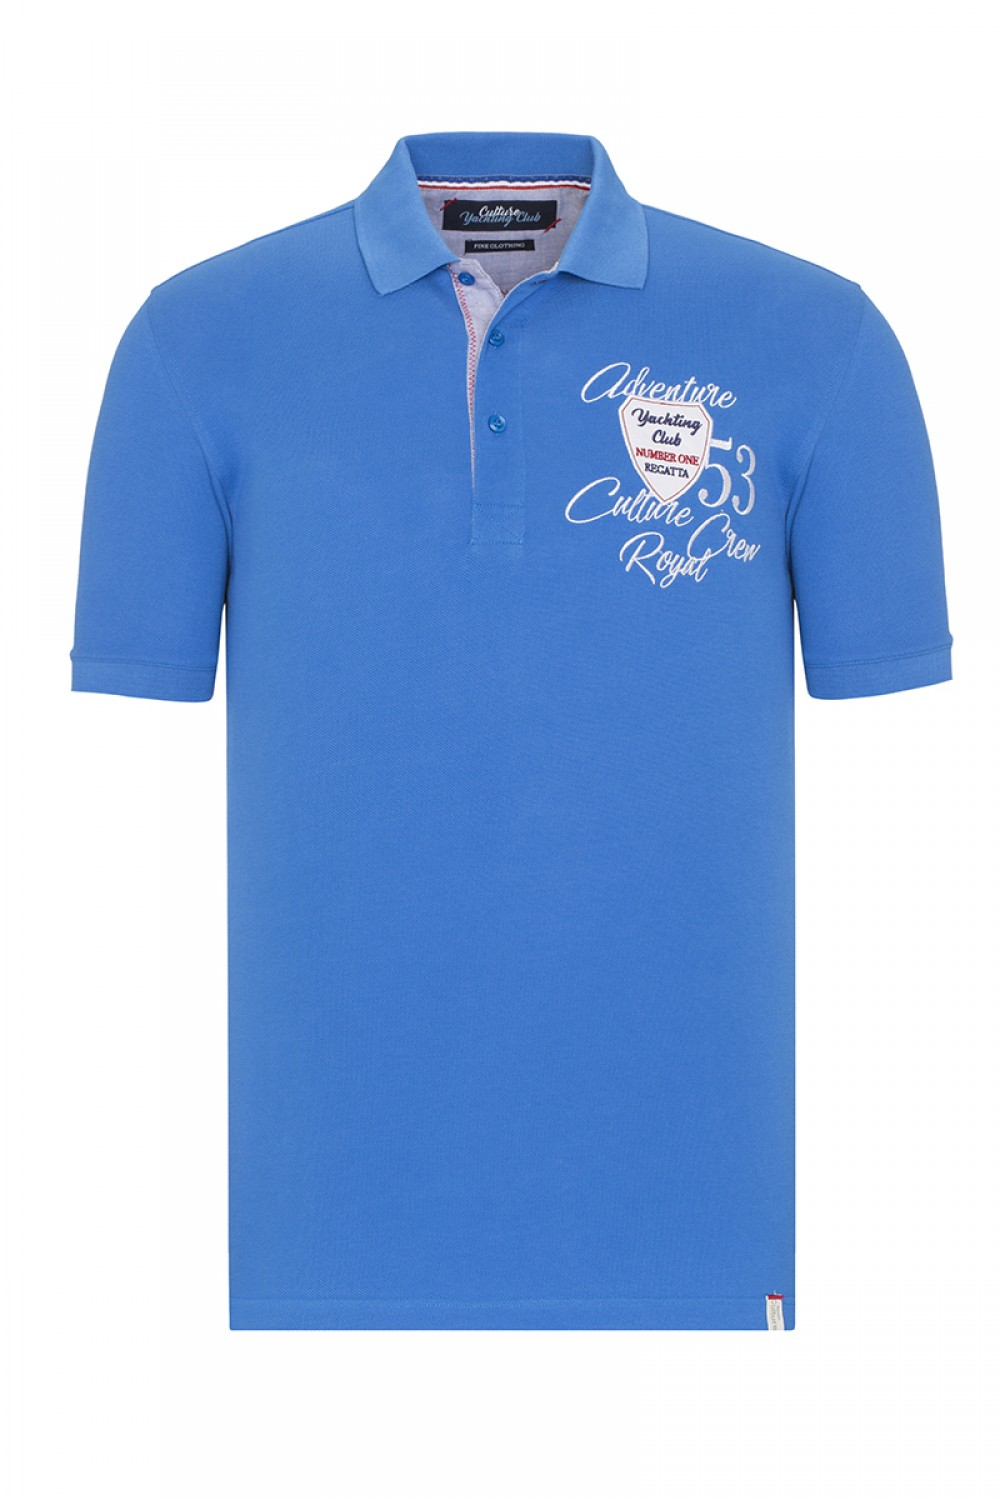 Men's Poloshirt Pique Royal